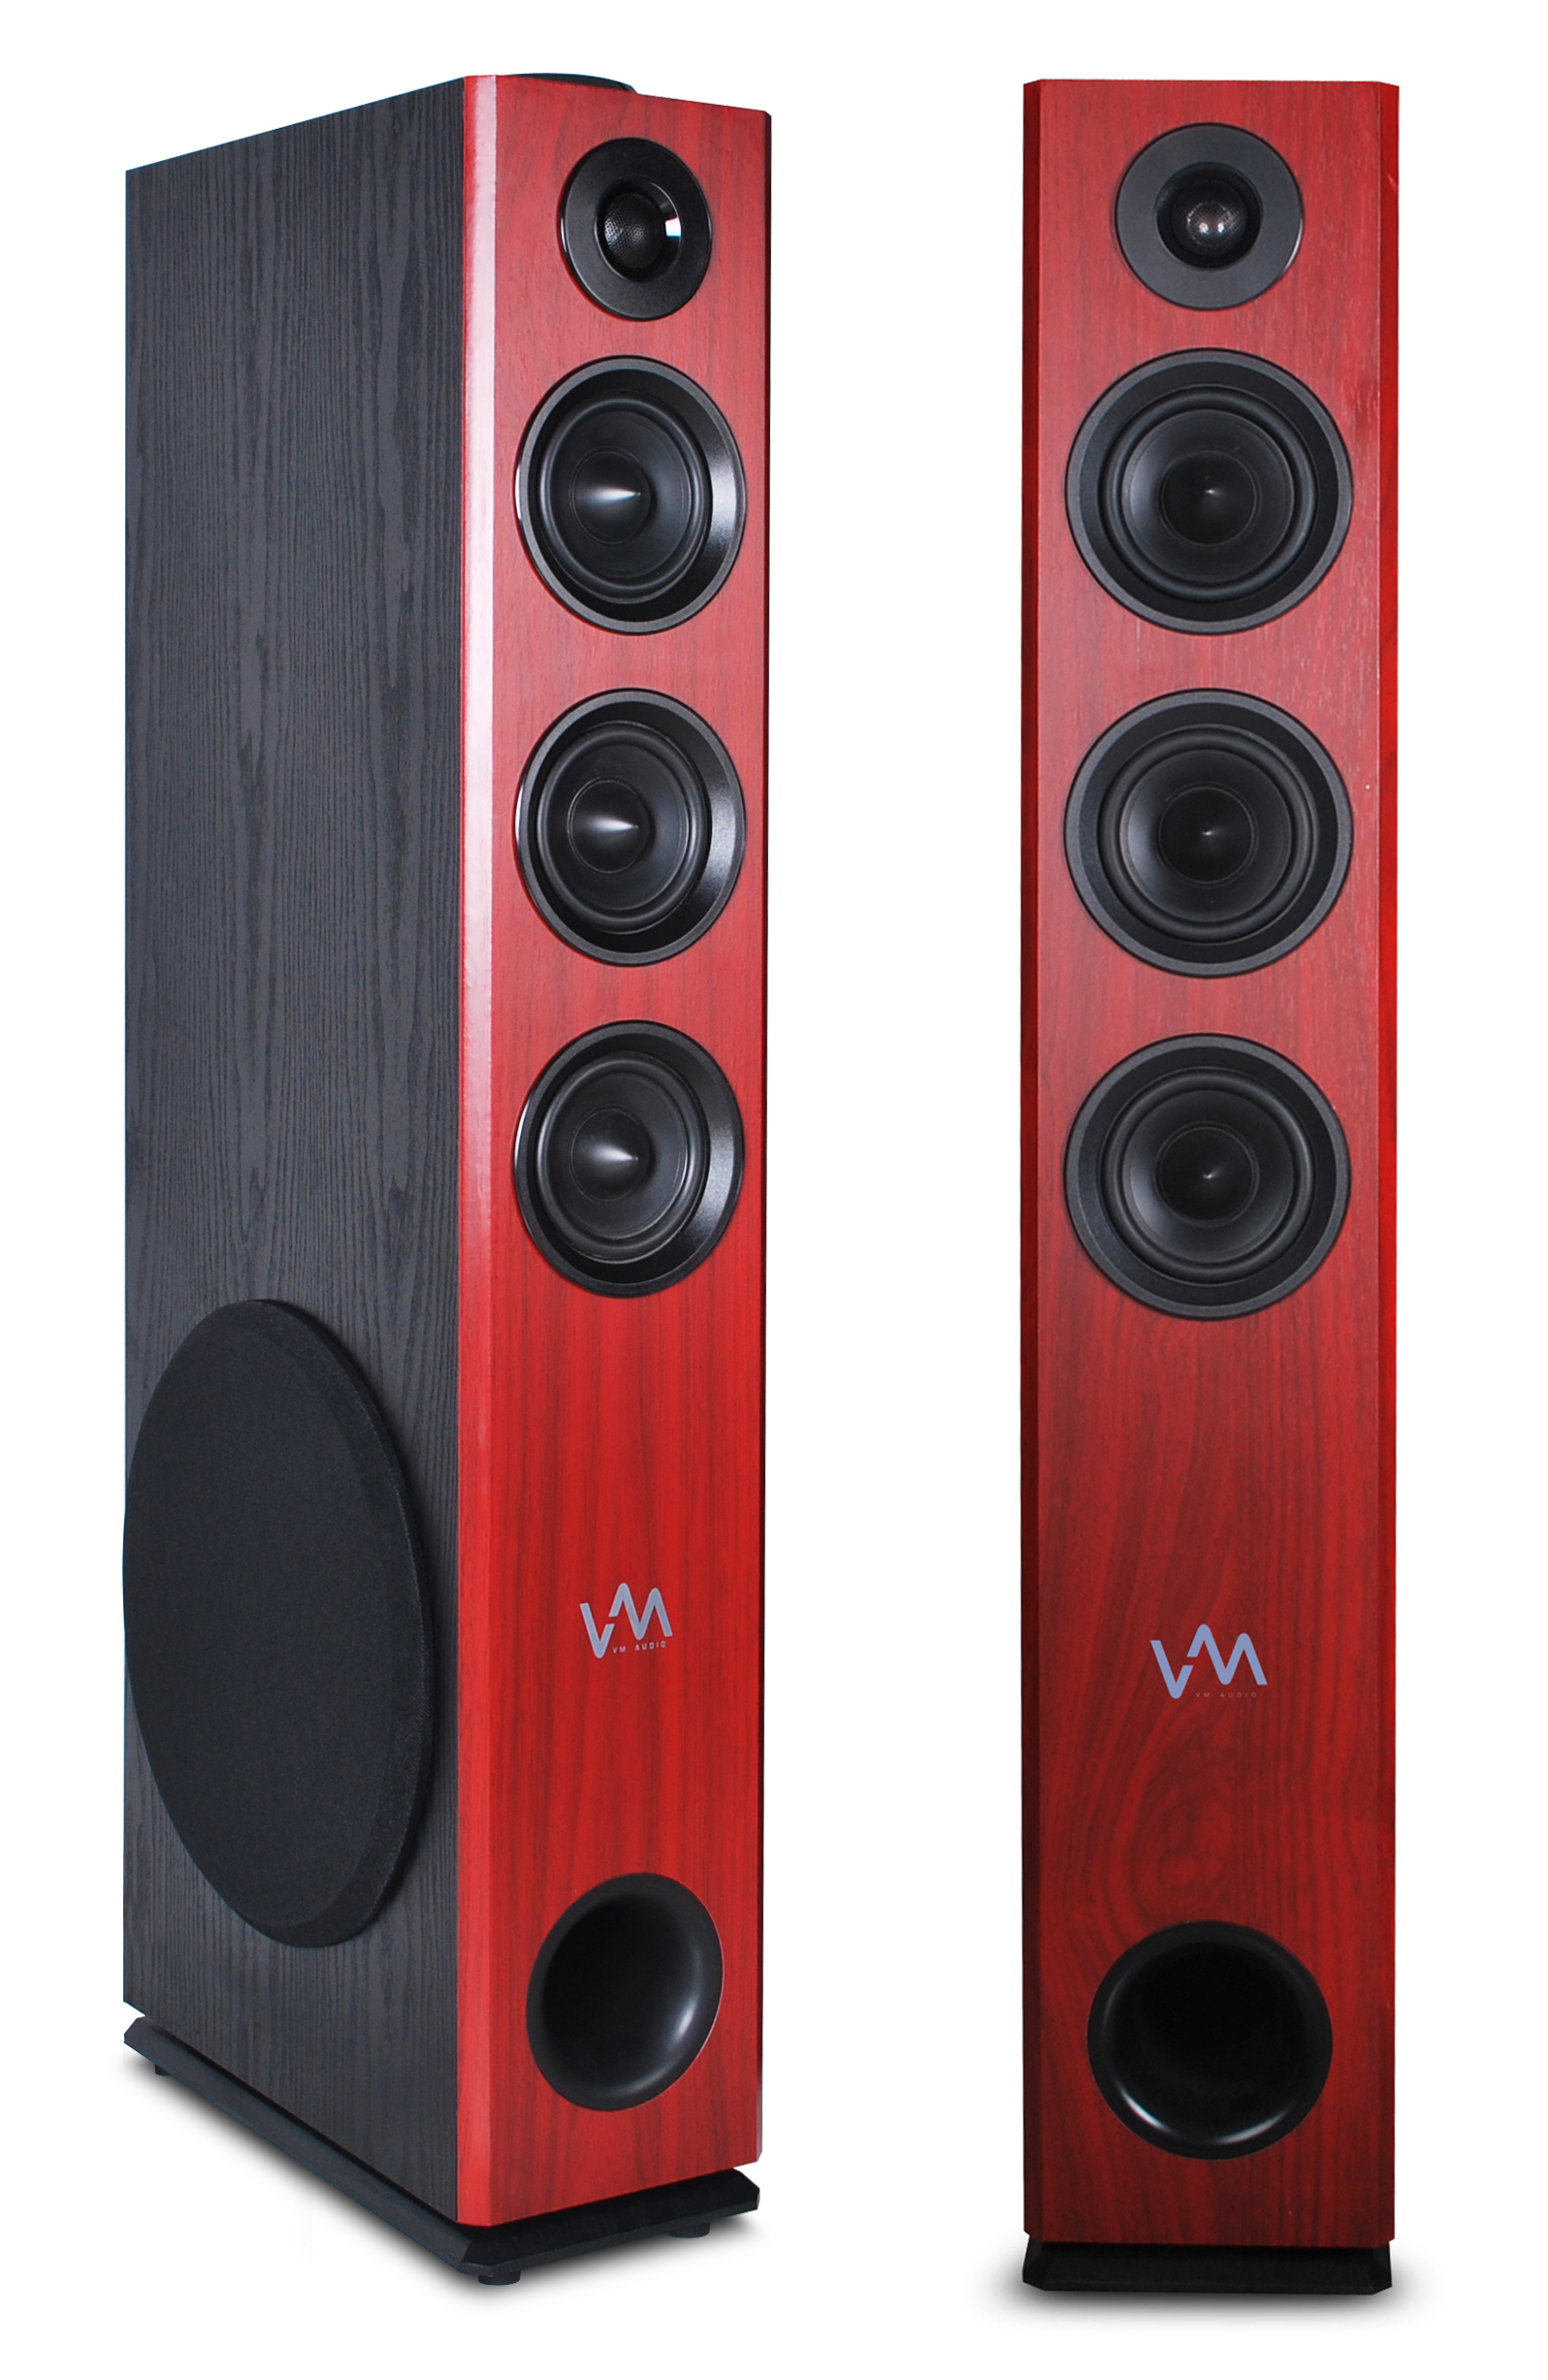 VM Audio EXAT32 Cherry/Black Floorstanding Powered Bluetooth Tower Speakers Pair